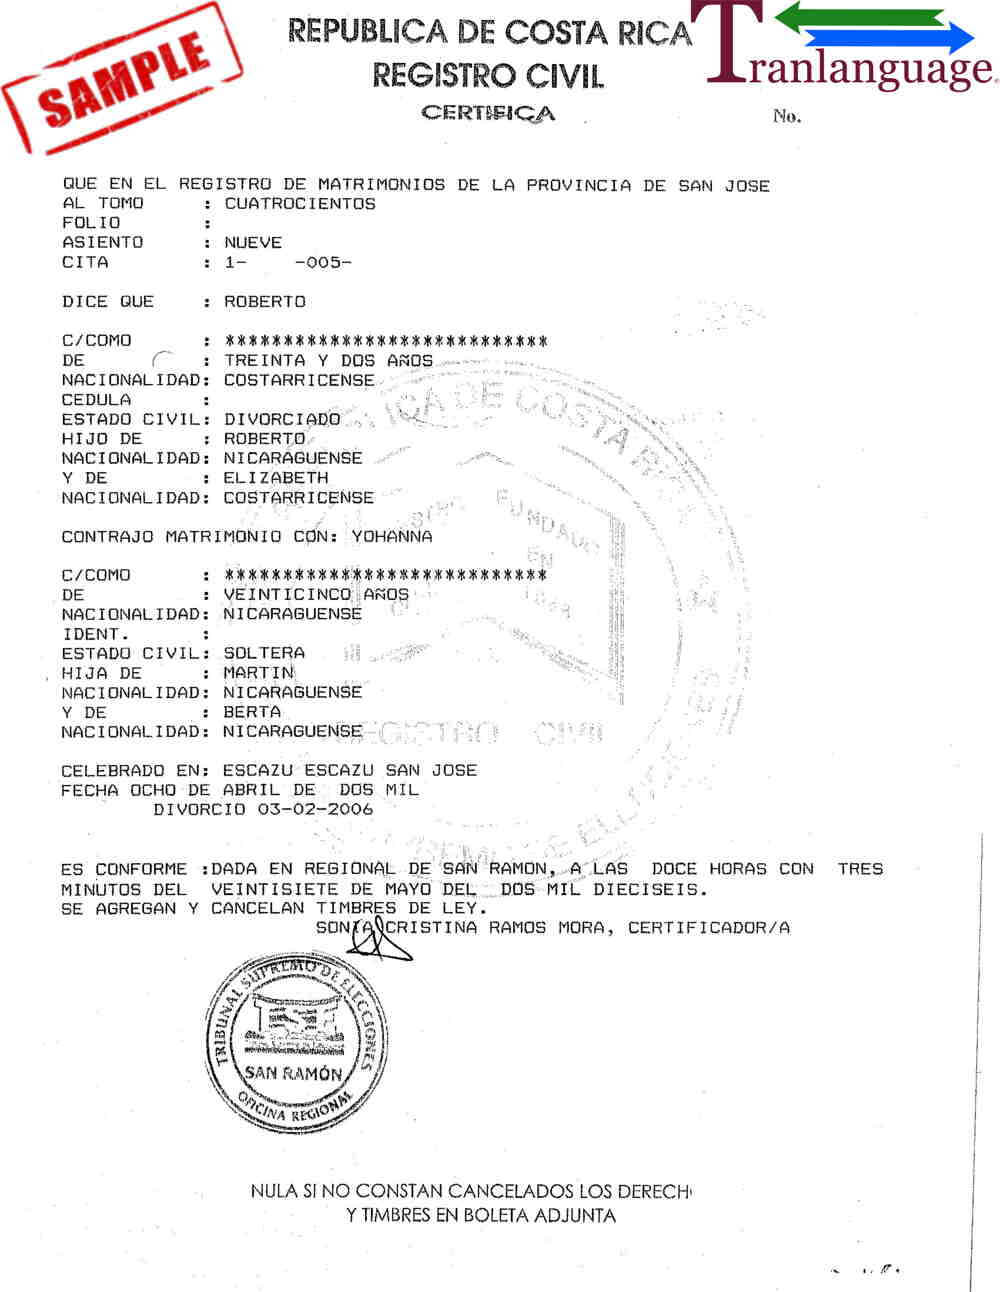 Marriage Certificate Costa Rica With Marriage Certificate Translation From Spanish To English Template